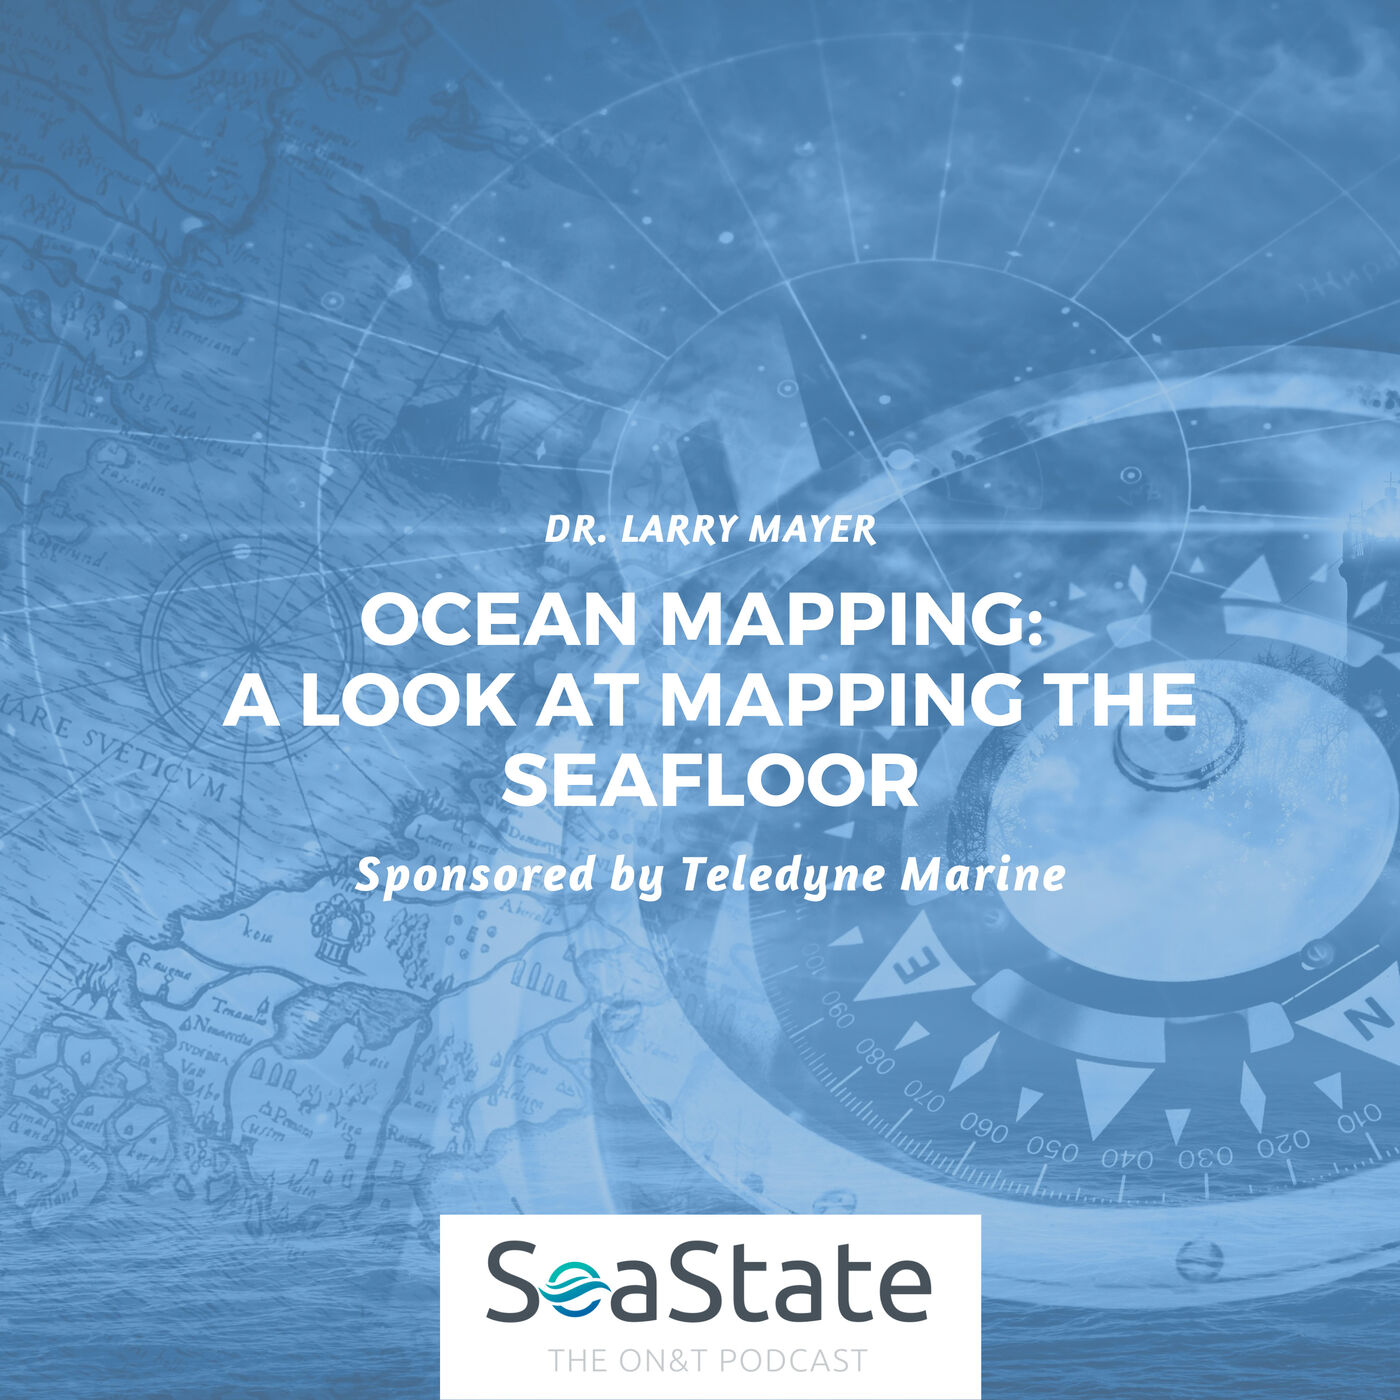 Ocean Mapping: A Look at Mapping the Seafloor